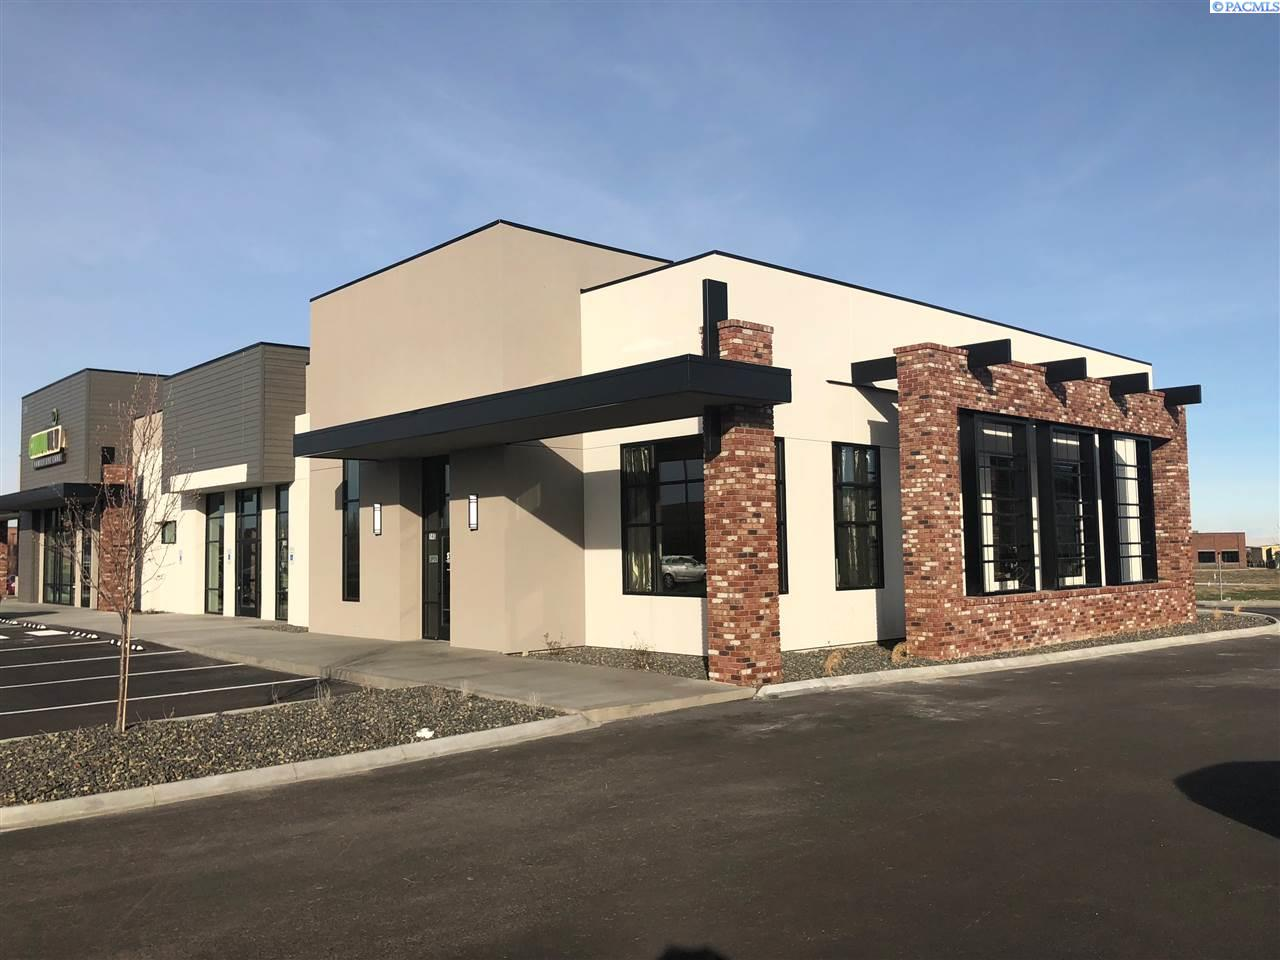 Offices for Sale at 2459 S Union Pl - Ste 130 Kennewick, Washington 99338 United States